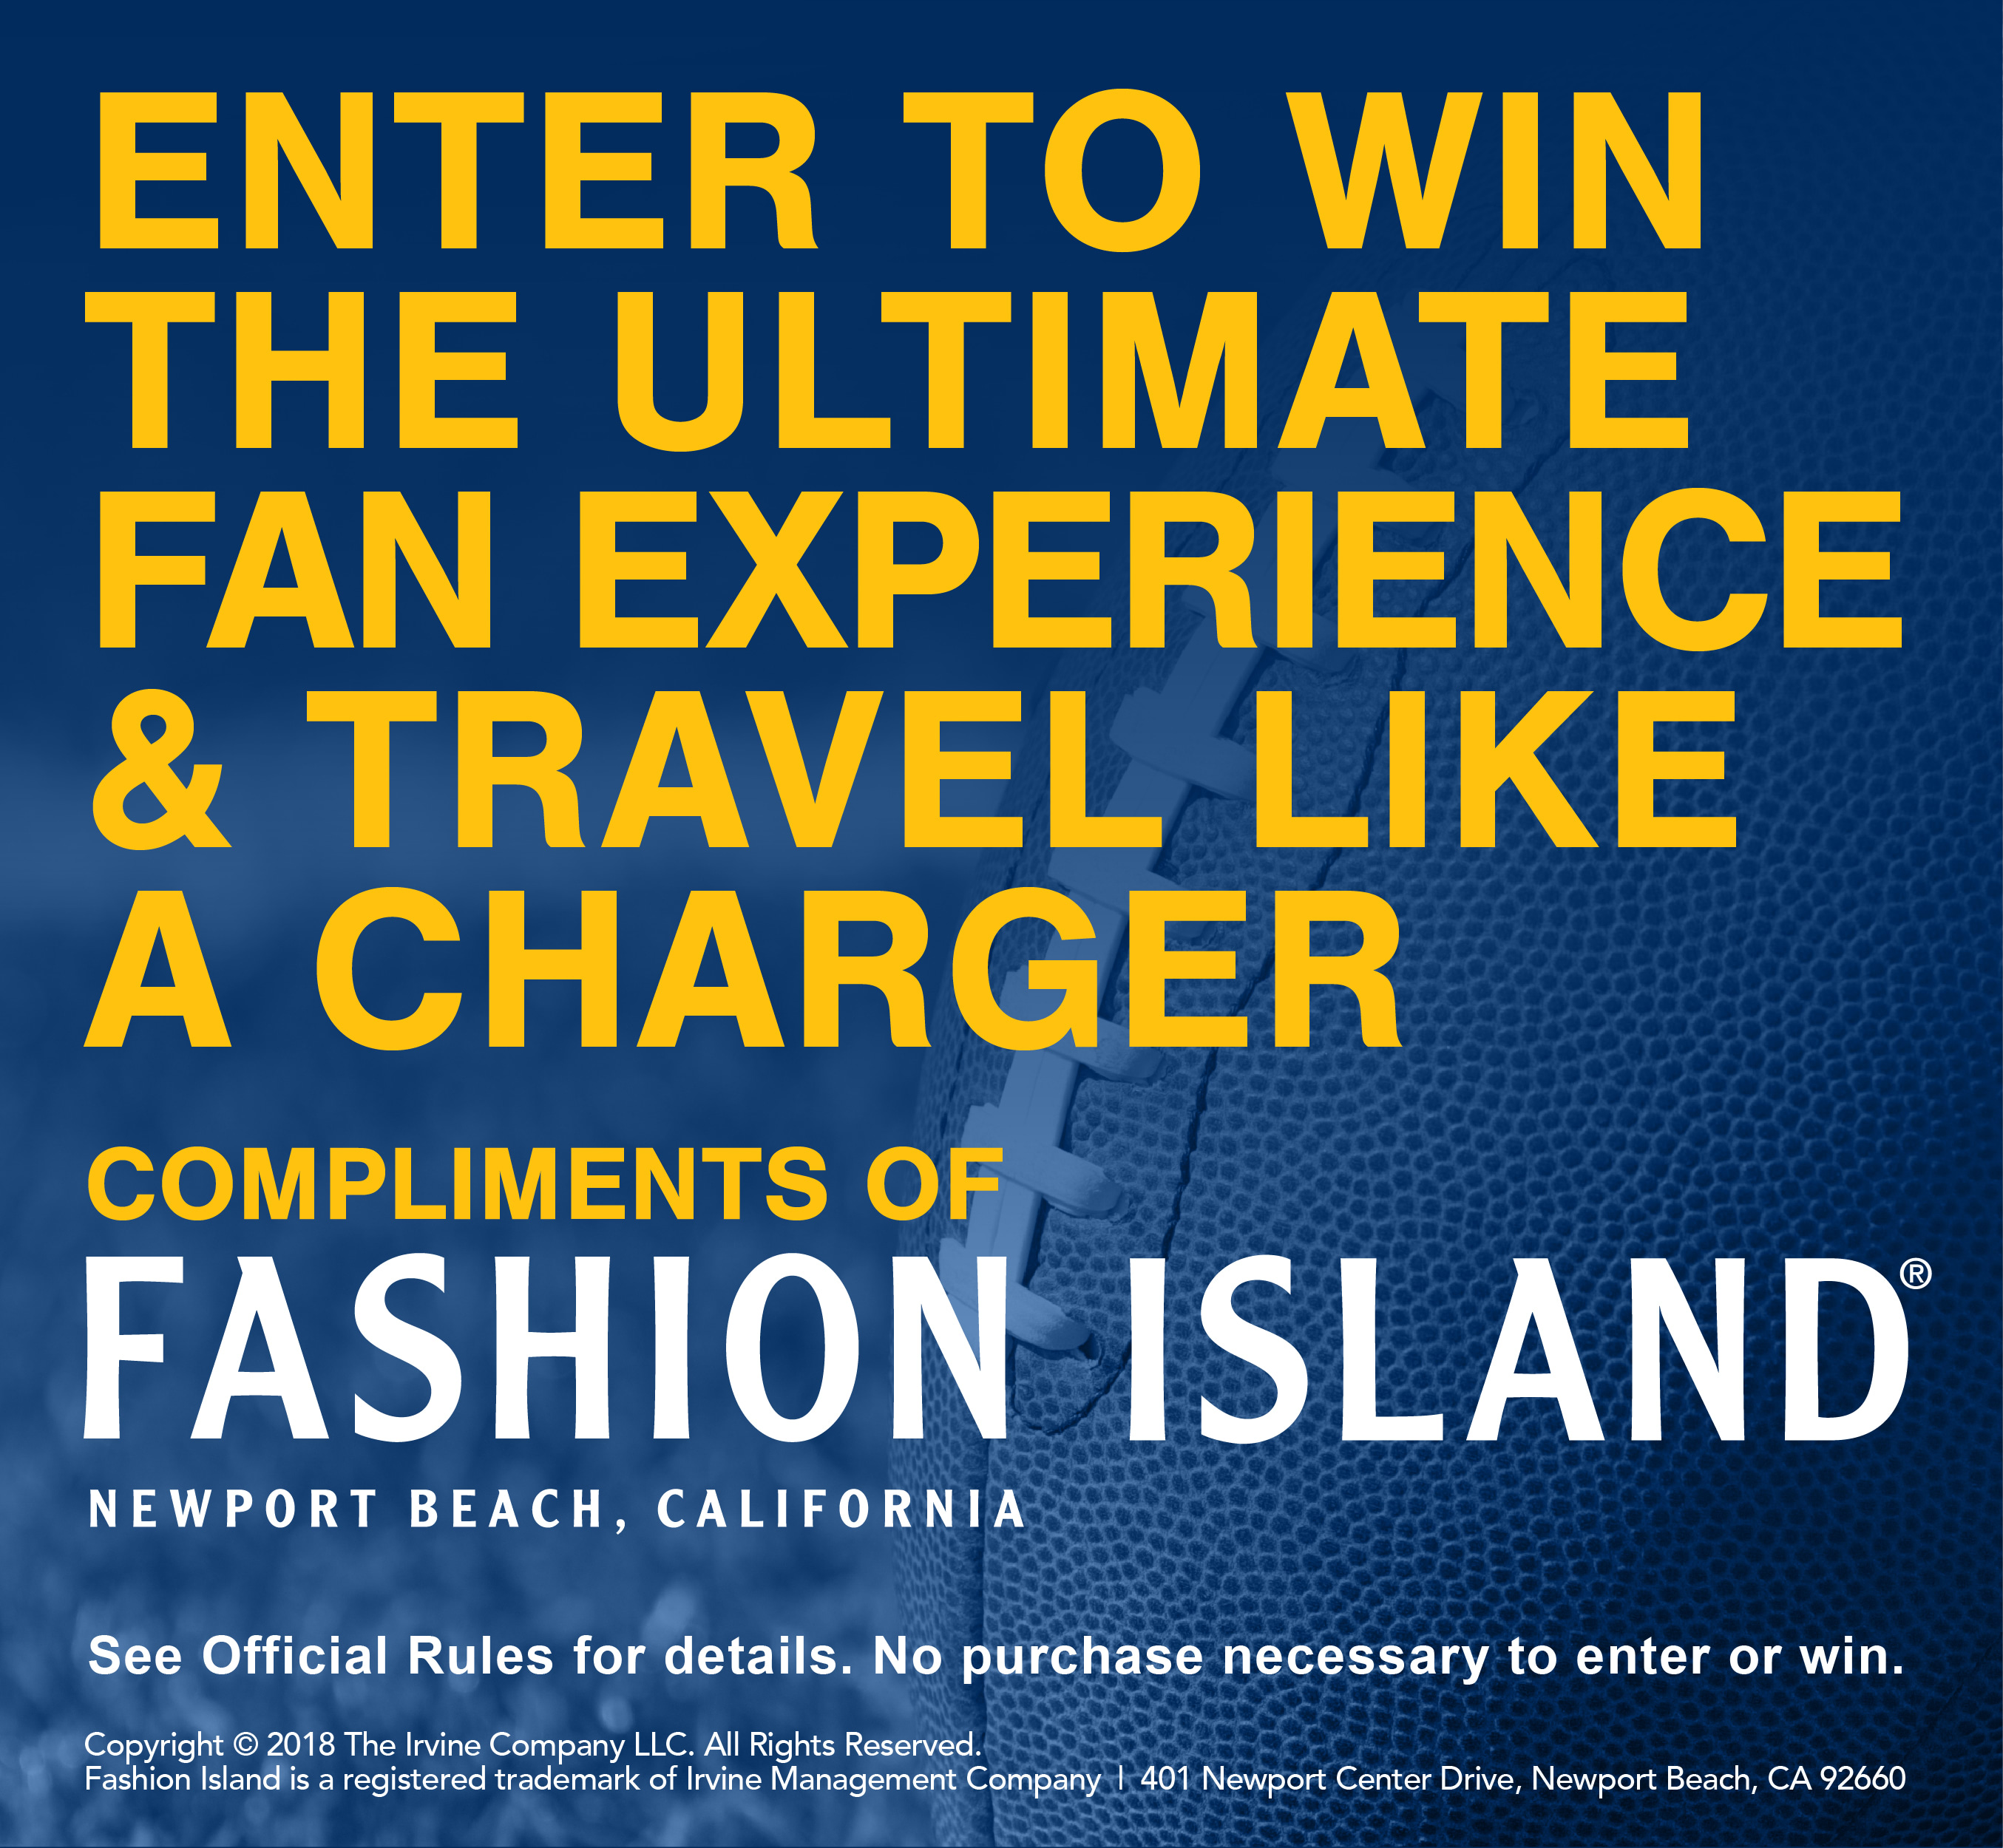 Enter to Win the Chance to Travel Like a Charger